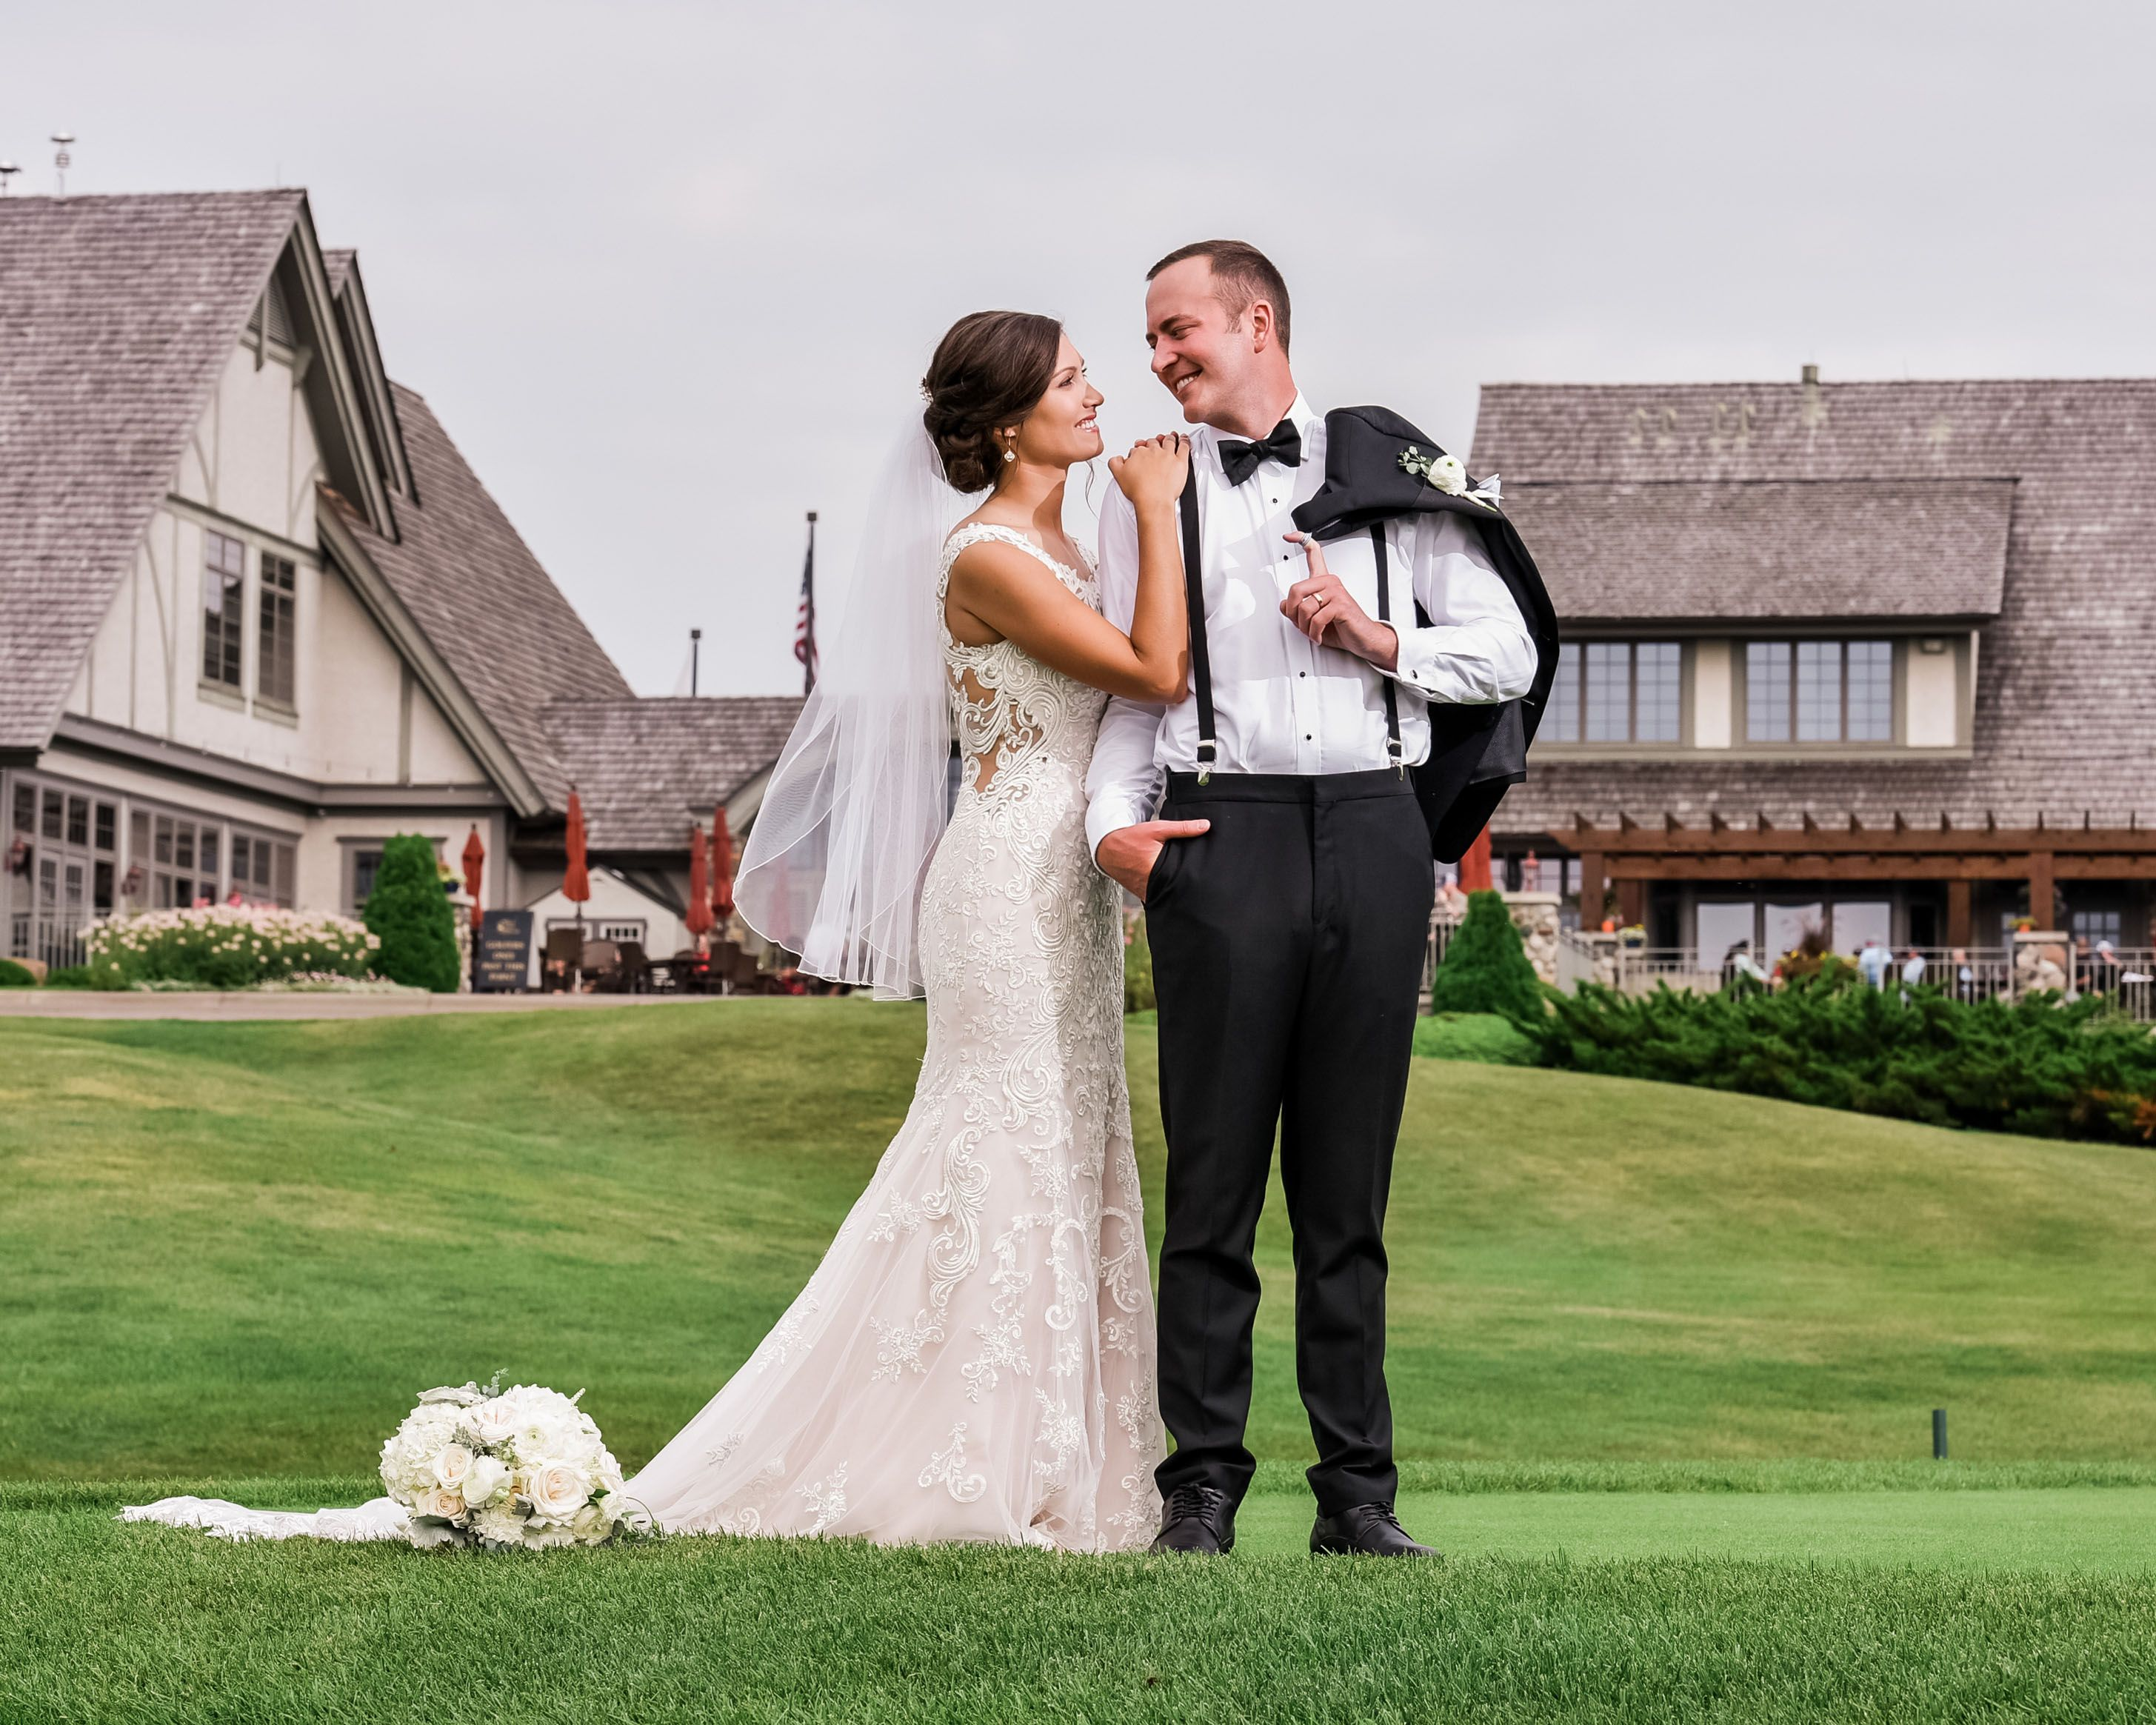 Find your Minneapolis wedding venue for photo inspiration.